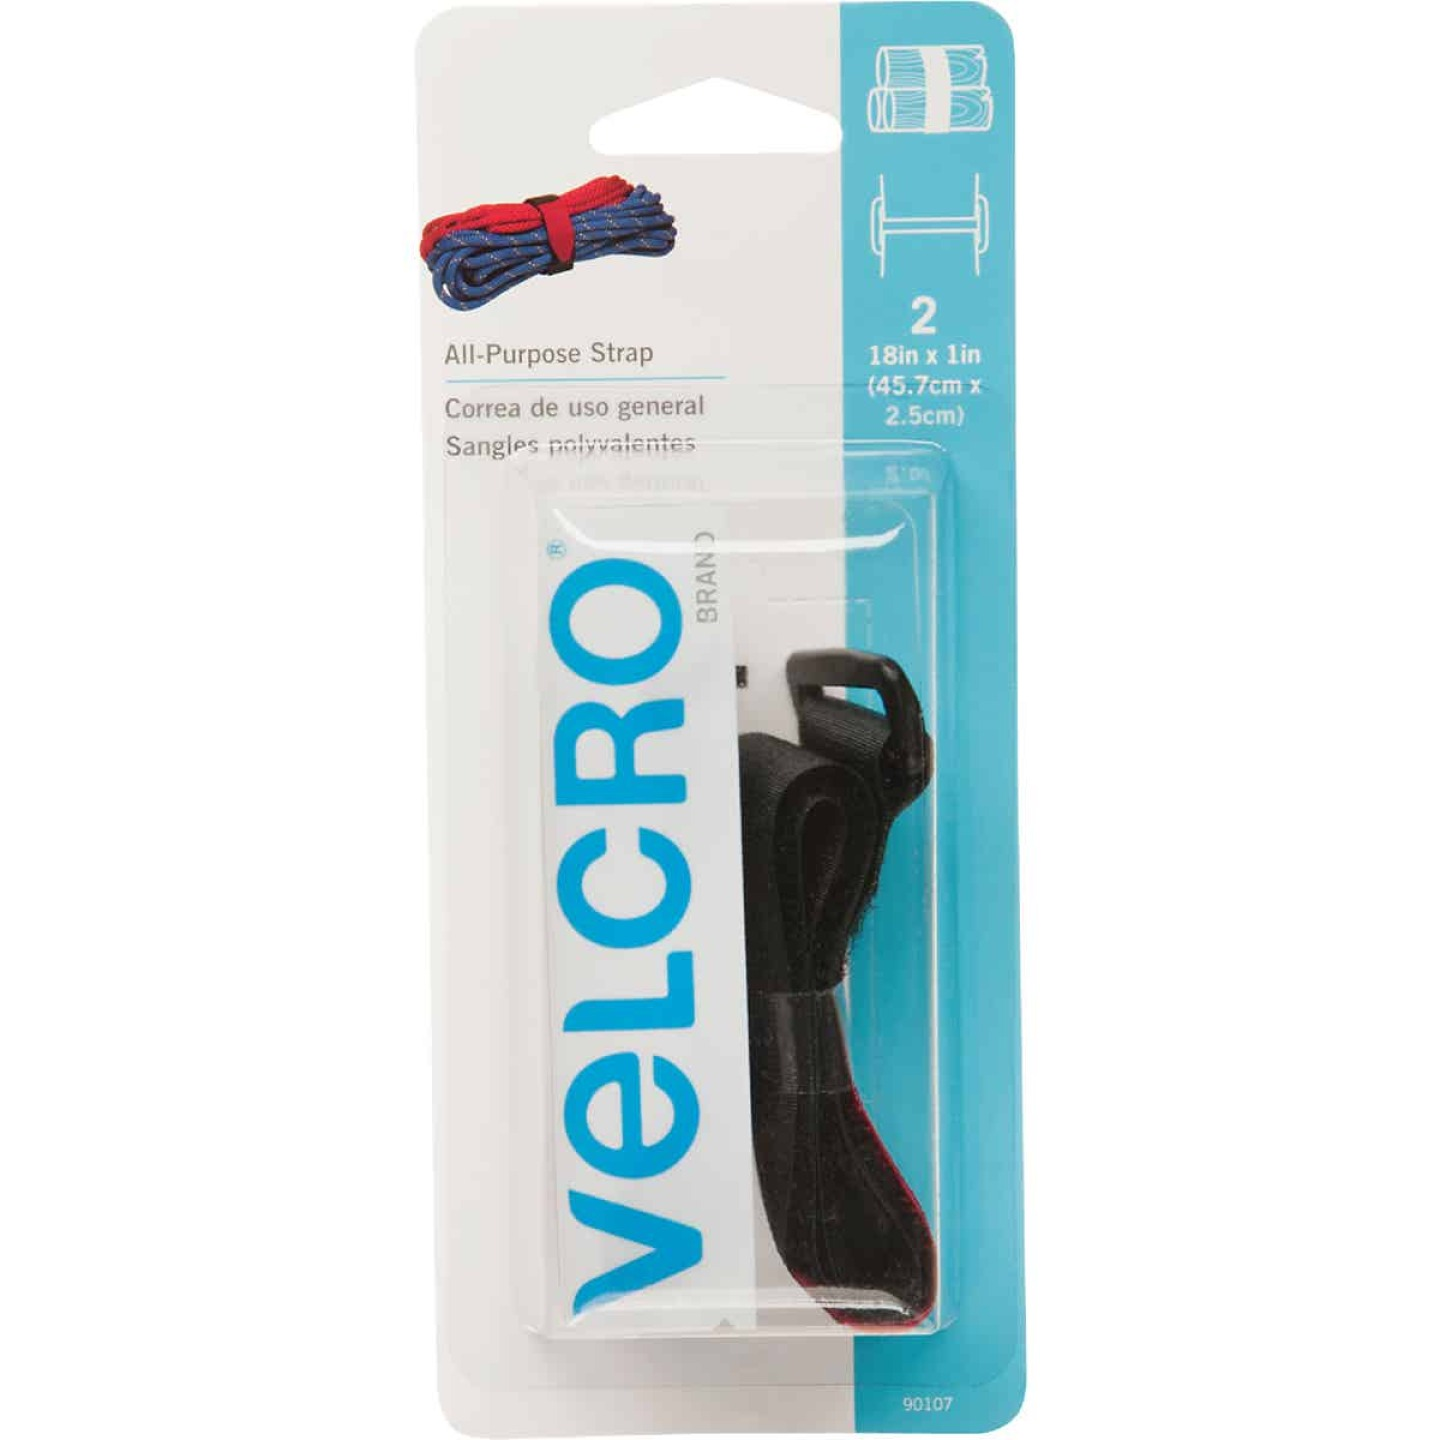 VELCRO Brand 1 In. x 18 In. Black All-Purpose Hook & Loop Strap (2 Ct.) Image 1